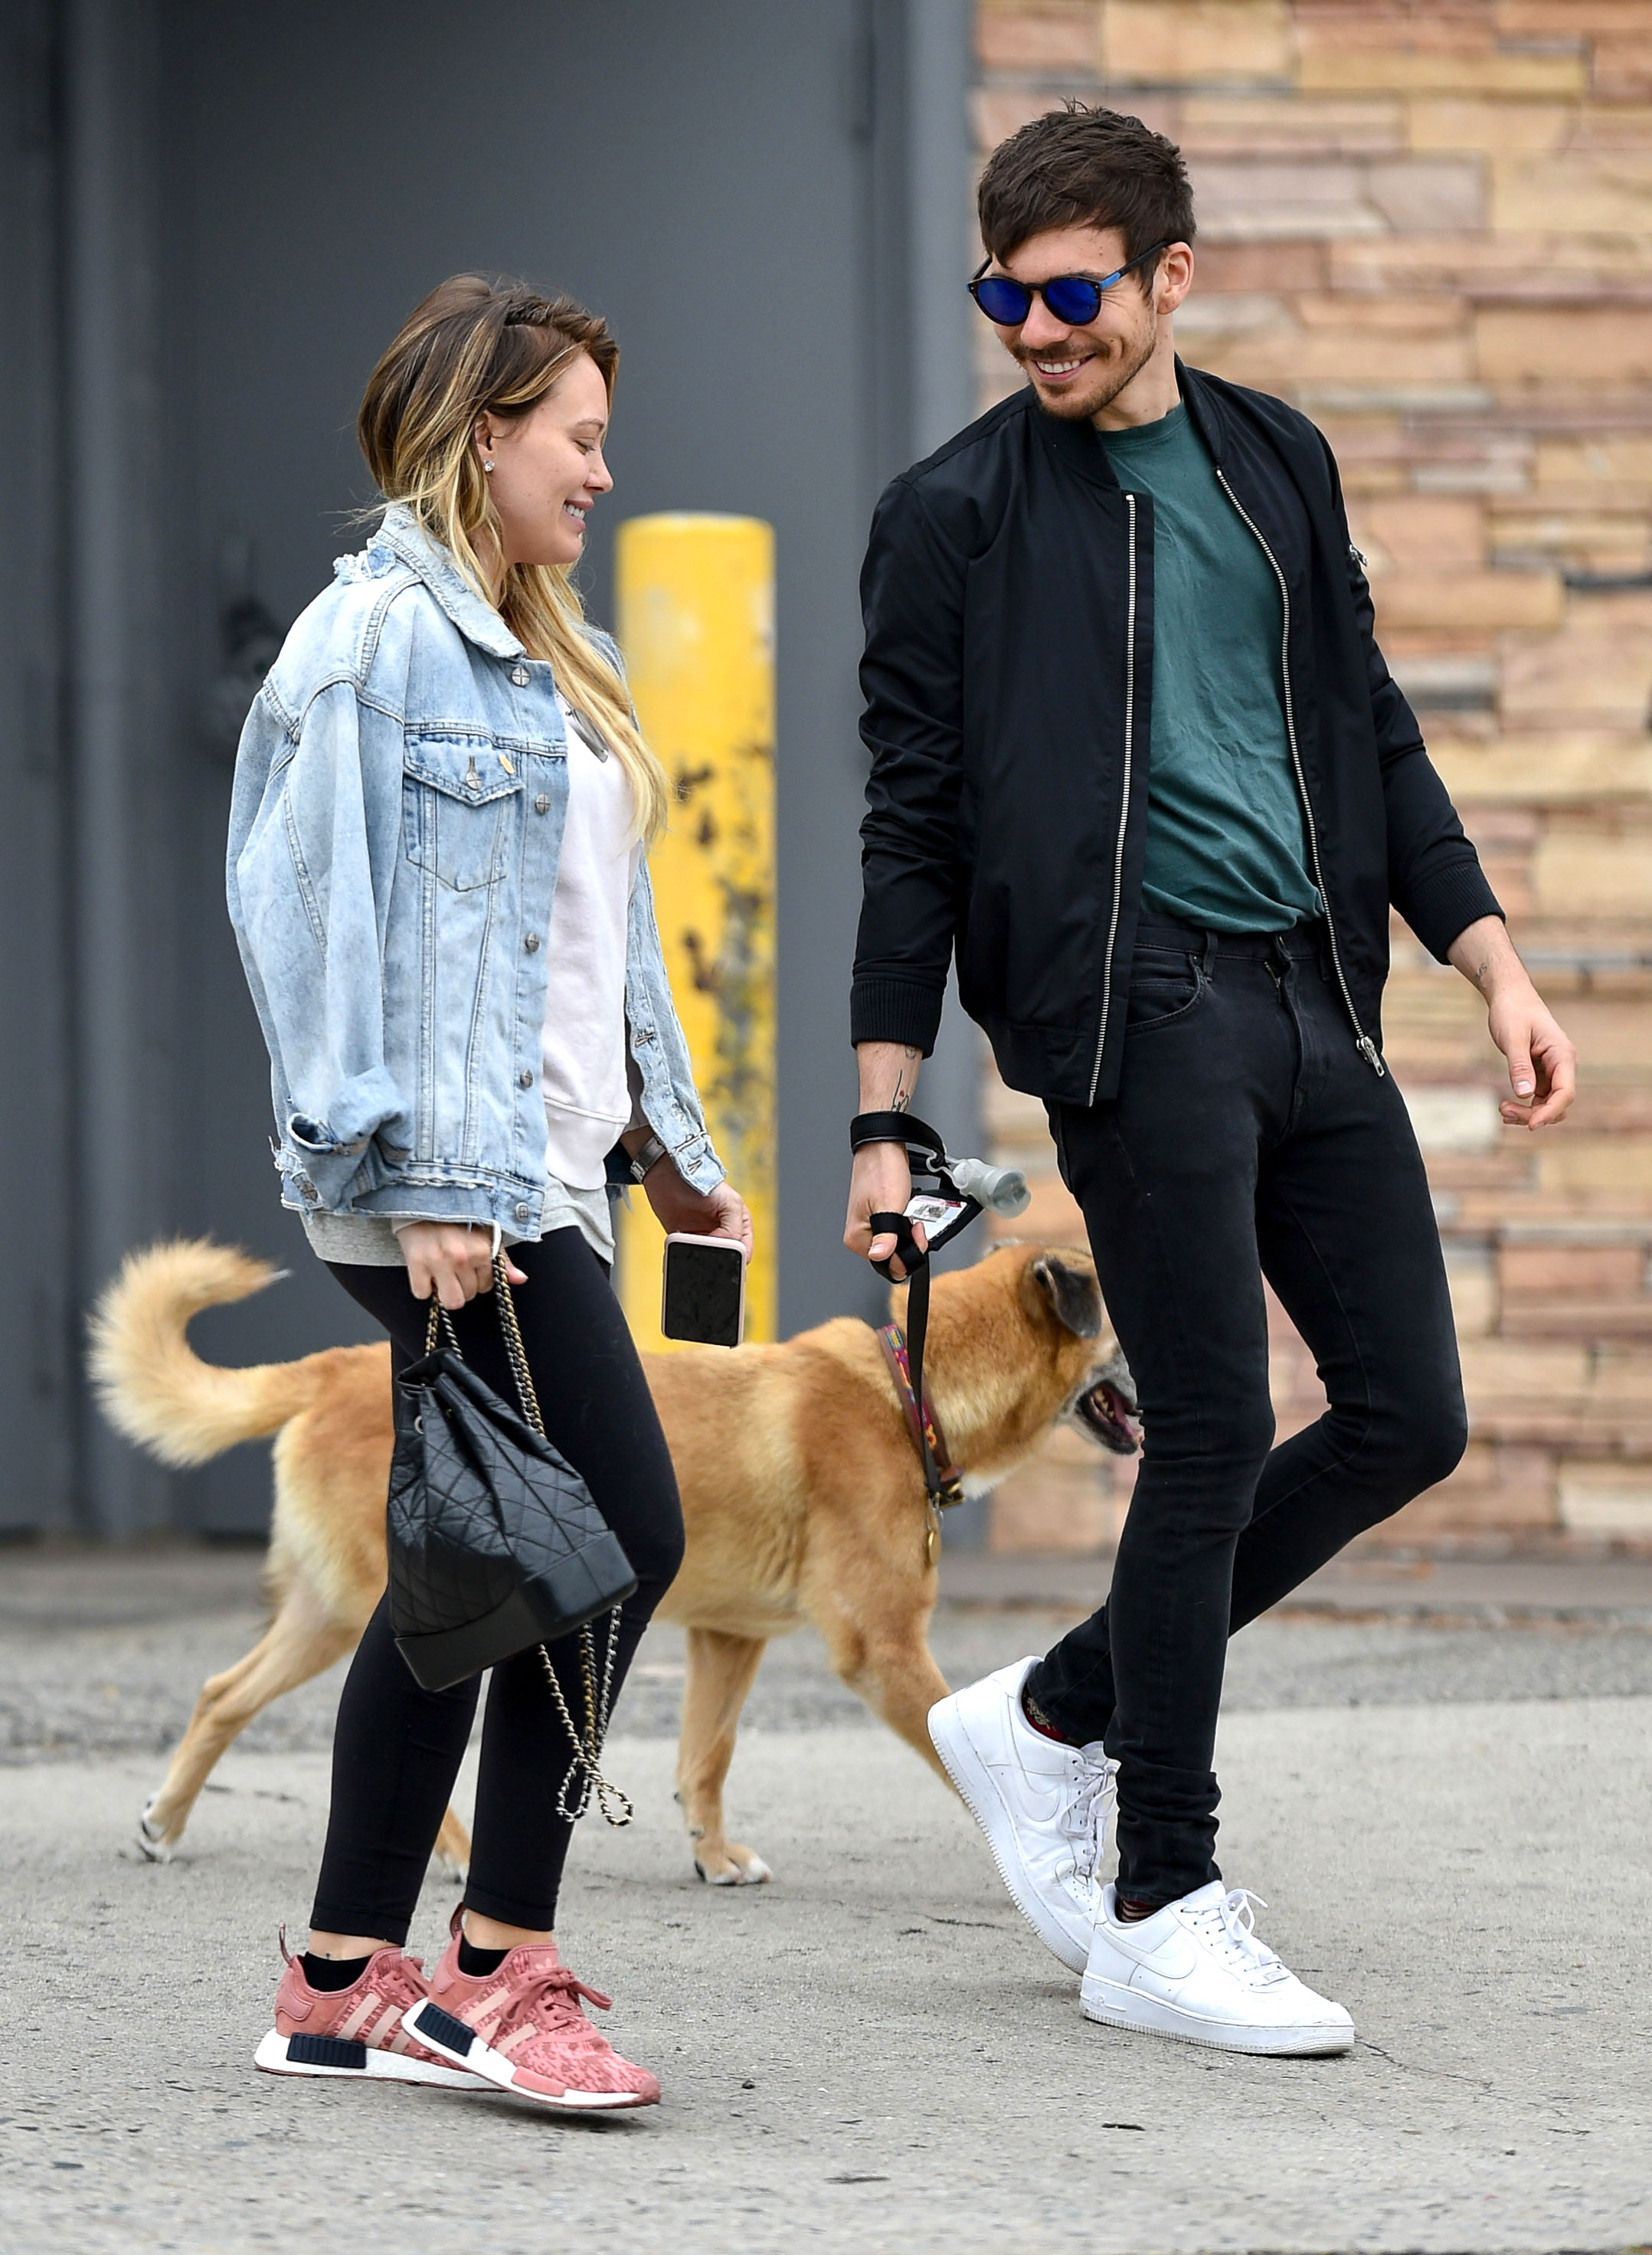 """Hilary Duff and Matthew Koma: A Timeline of Their Relationship - Duff and Koma welcomed an elderly dog into their home. """"Hey guys! We adopted an old dog,"""" the actress wrote alongside a sweet Instagram pic at the time."""